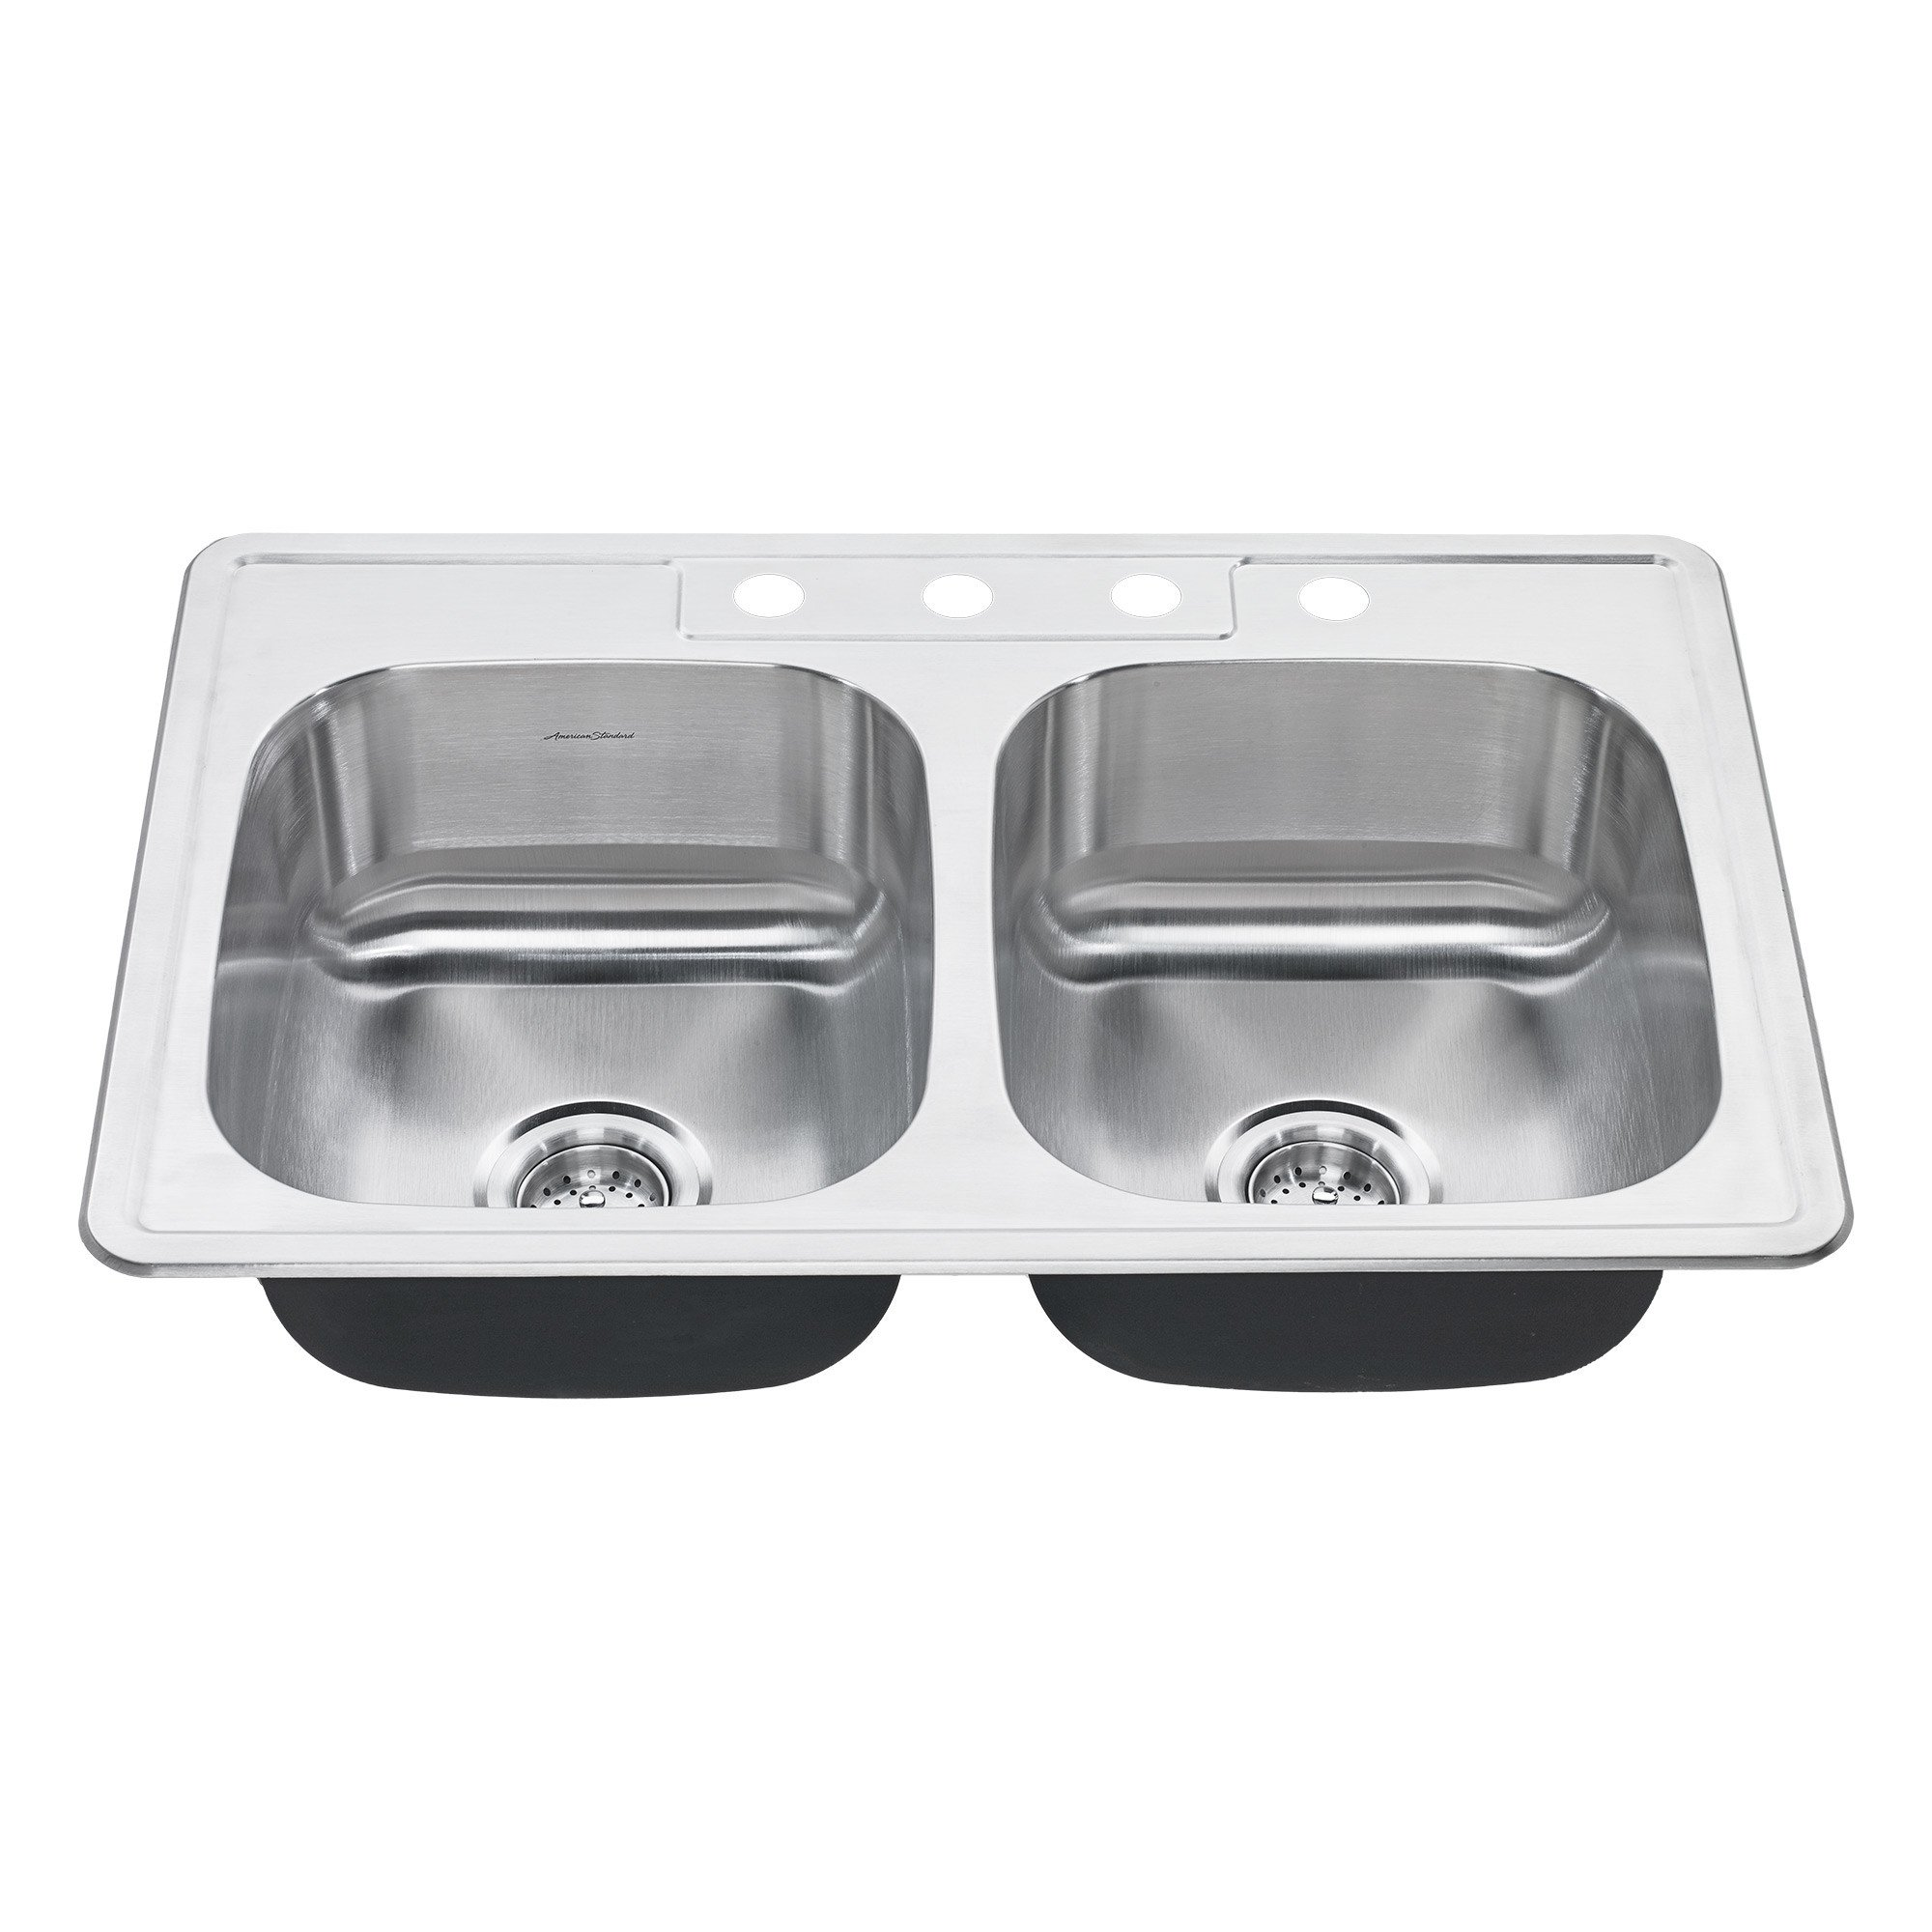 American Standard 20DB.8332284S.075 Colony Top Mount 33x22 Double Bowl Stainless Steel 4-hole Kitchen Sink